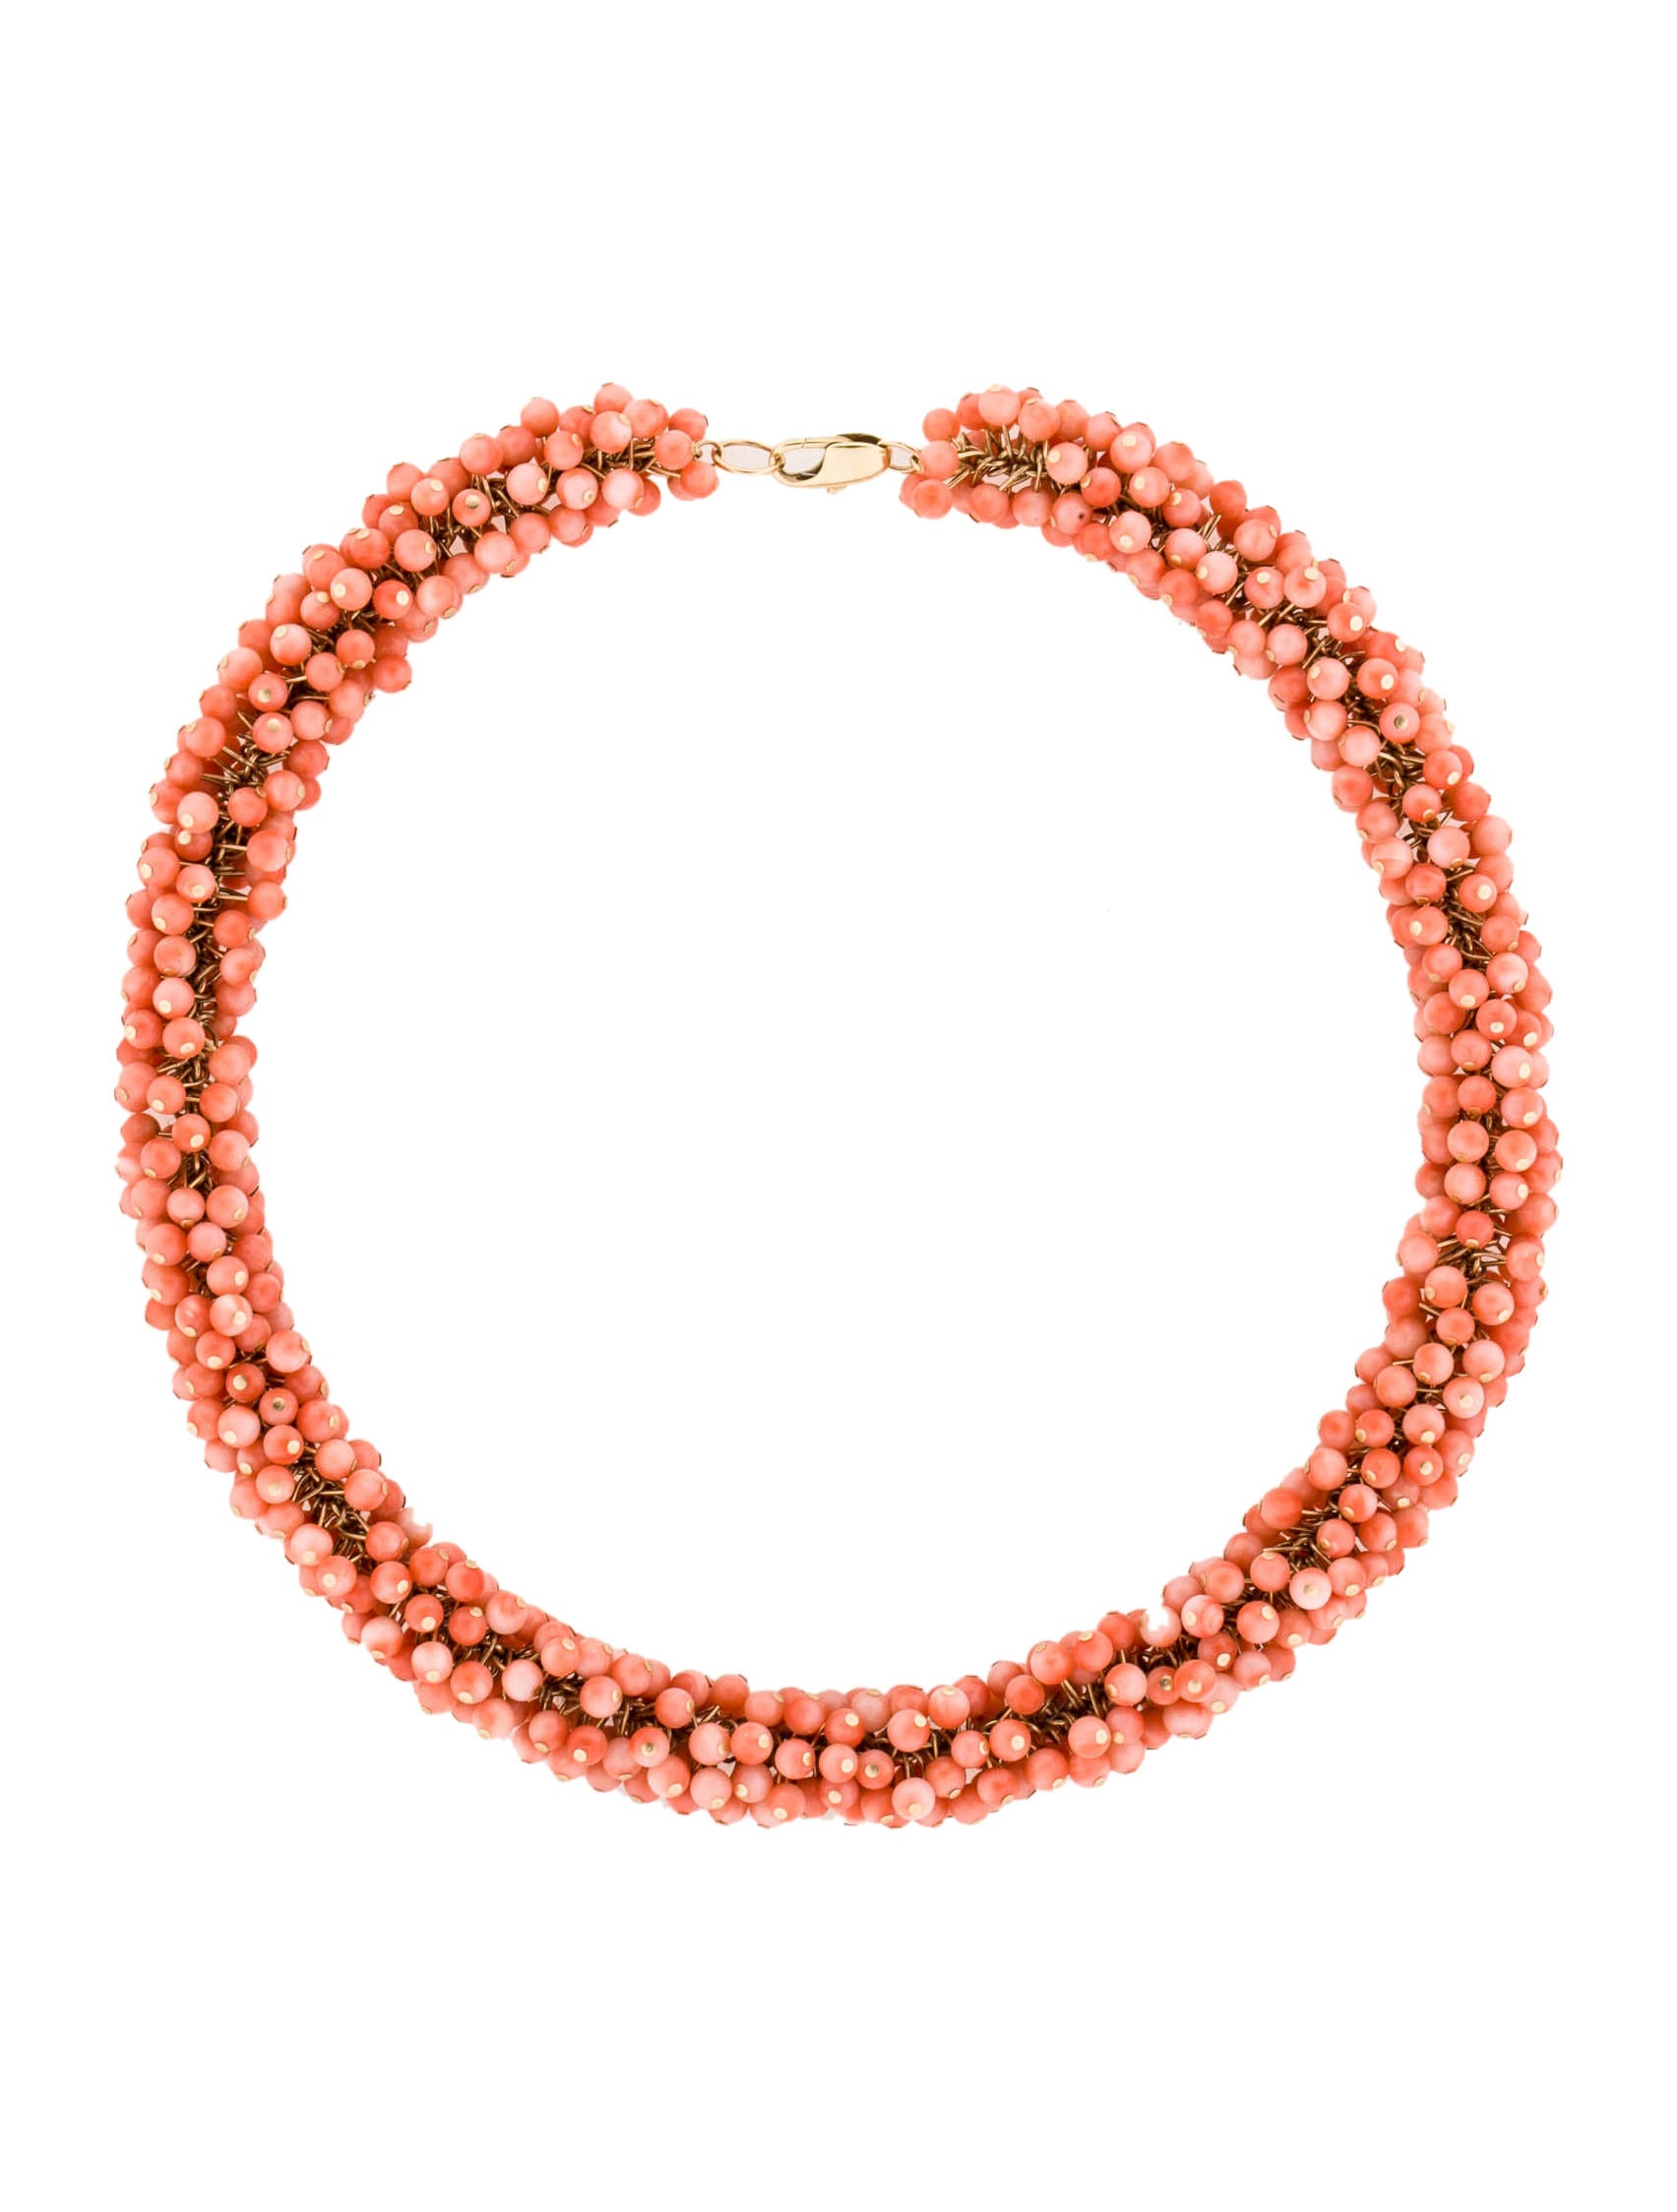 coral beaded necklace necklaces fjn22257 the realreal